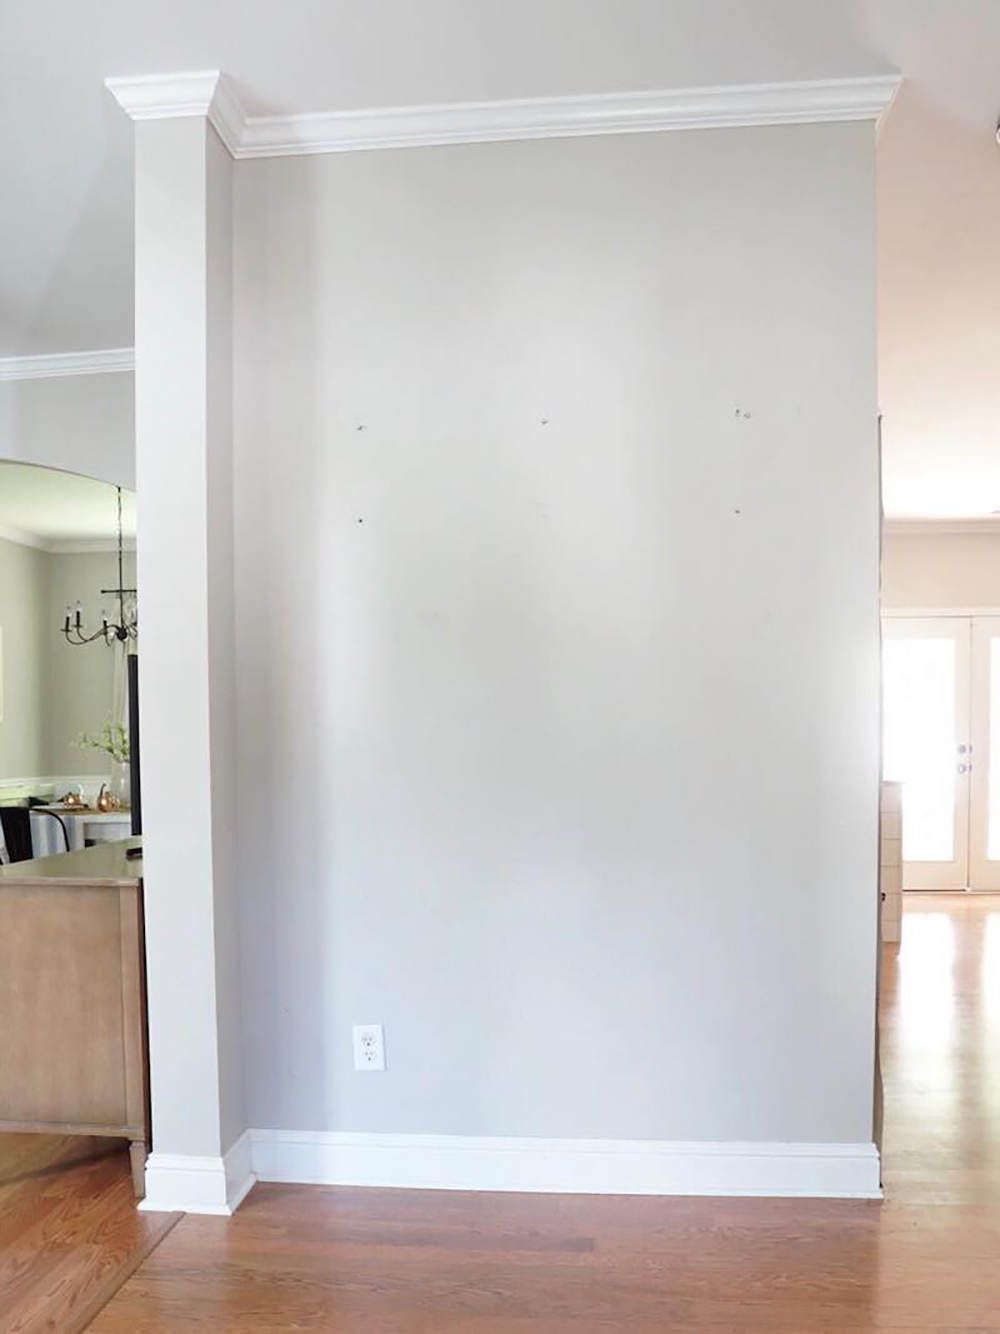 An entryway with a gray wall and no decor.